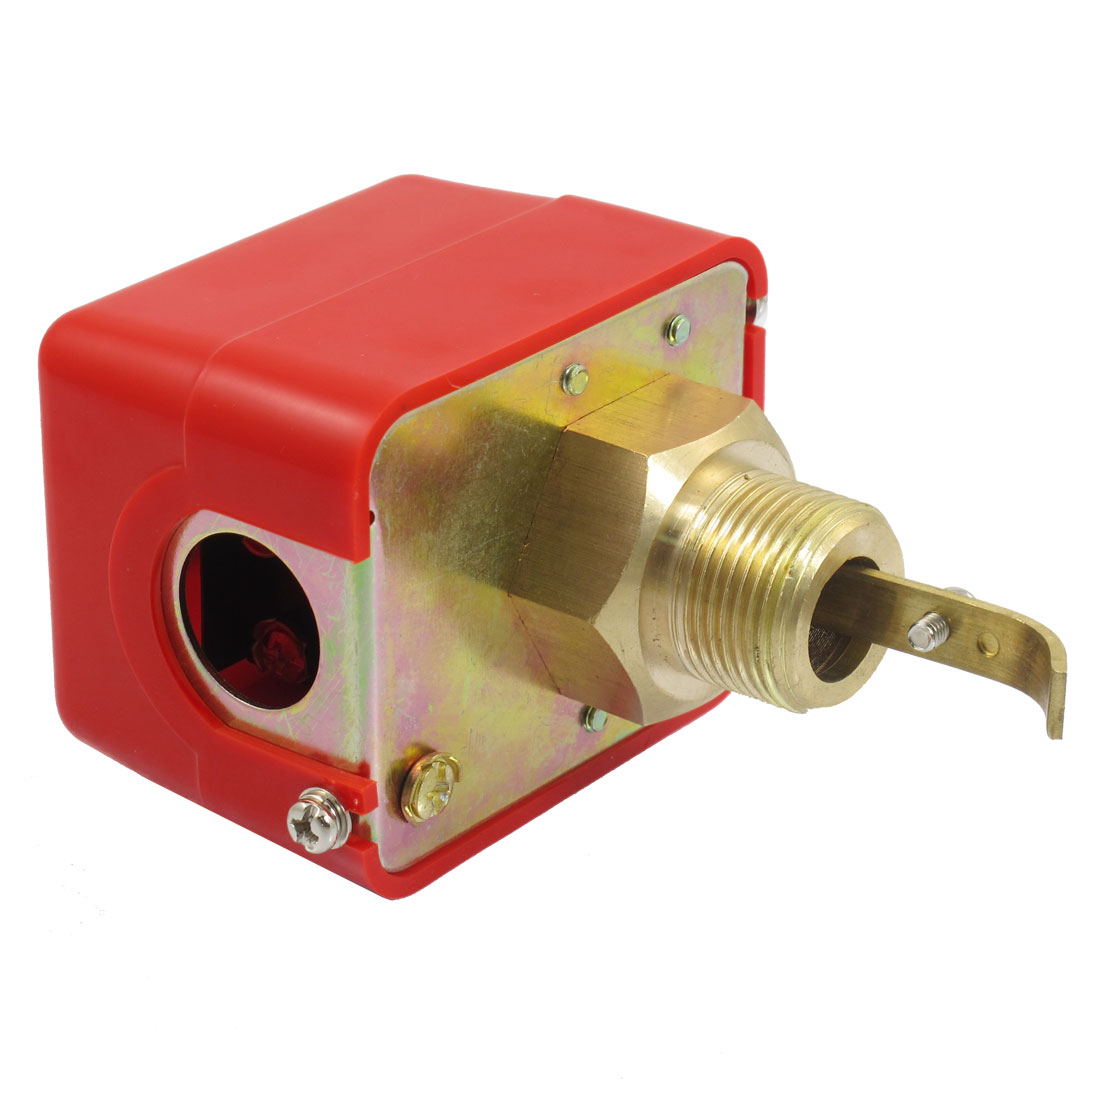 "AC 250V 15A SPDT G5/8"" Thread Connection Water Flow Paddle Control Switch"